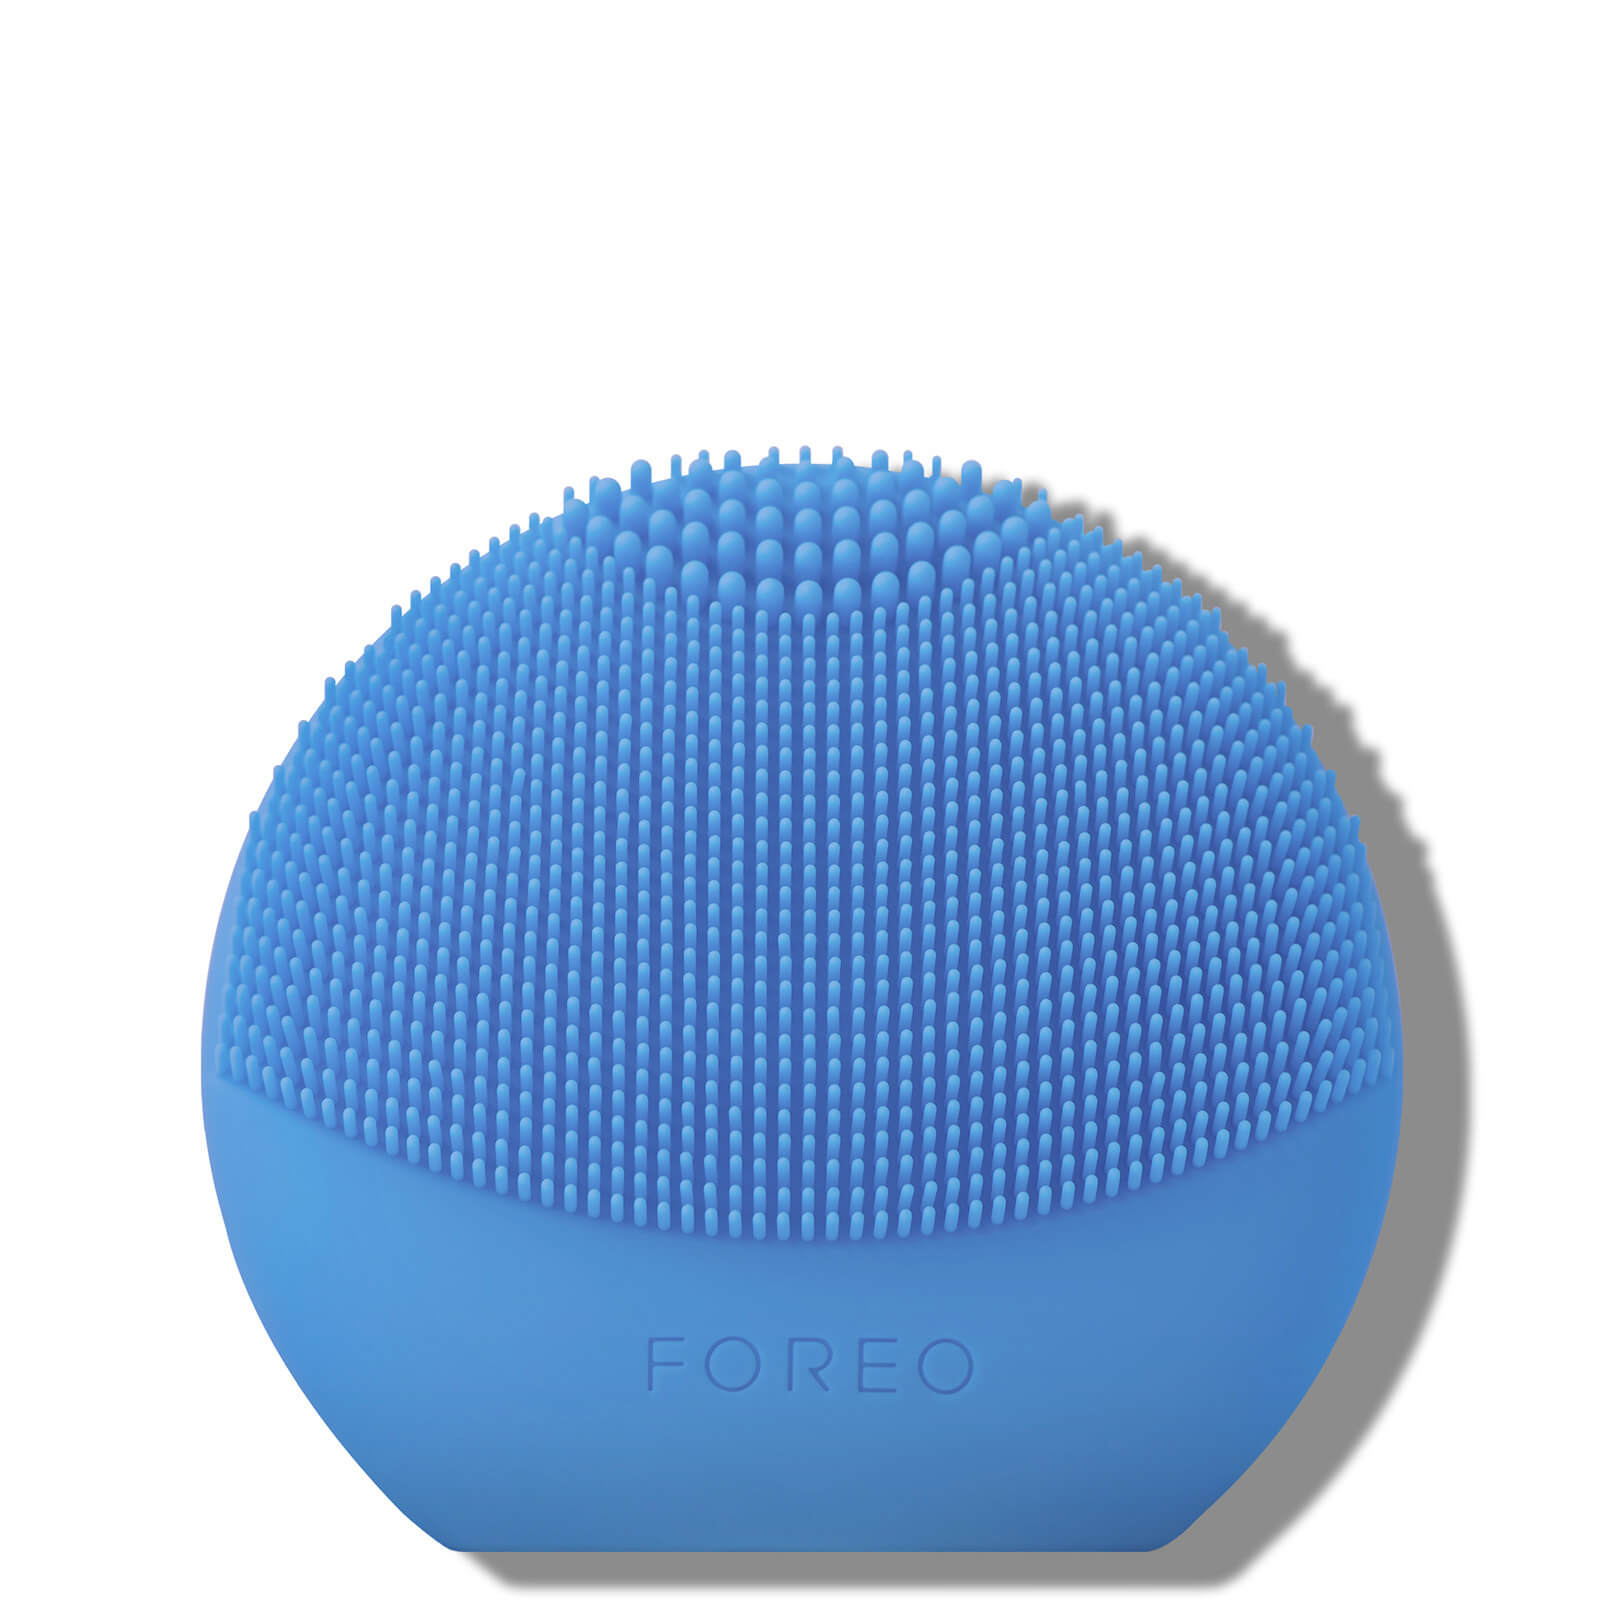 Купить FOREO Luna Play Smart 2 Smart Skin Analysis and Facial Cleansing Device (Various Shades) - Peek-A-Blue!